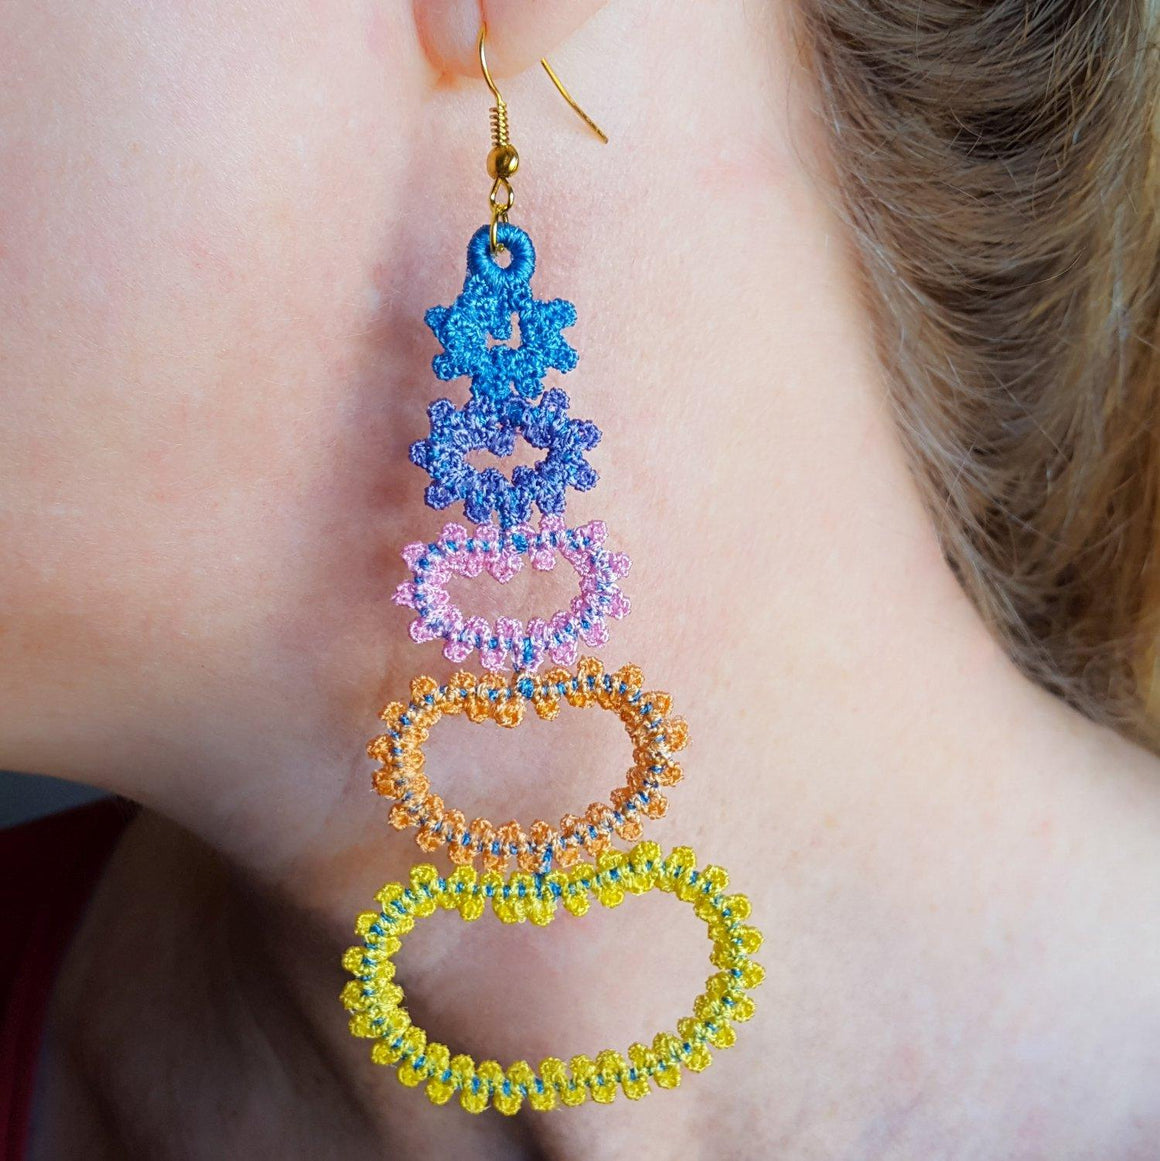 Ombre Brilliance Freestanding Lace Earrings - a-stitch-a-half